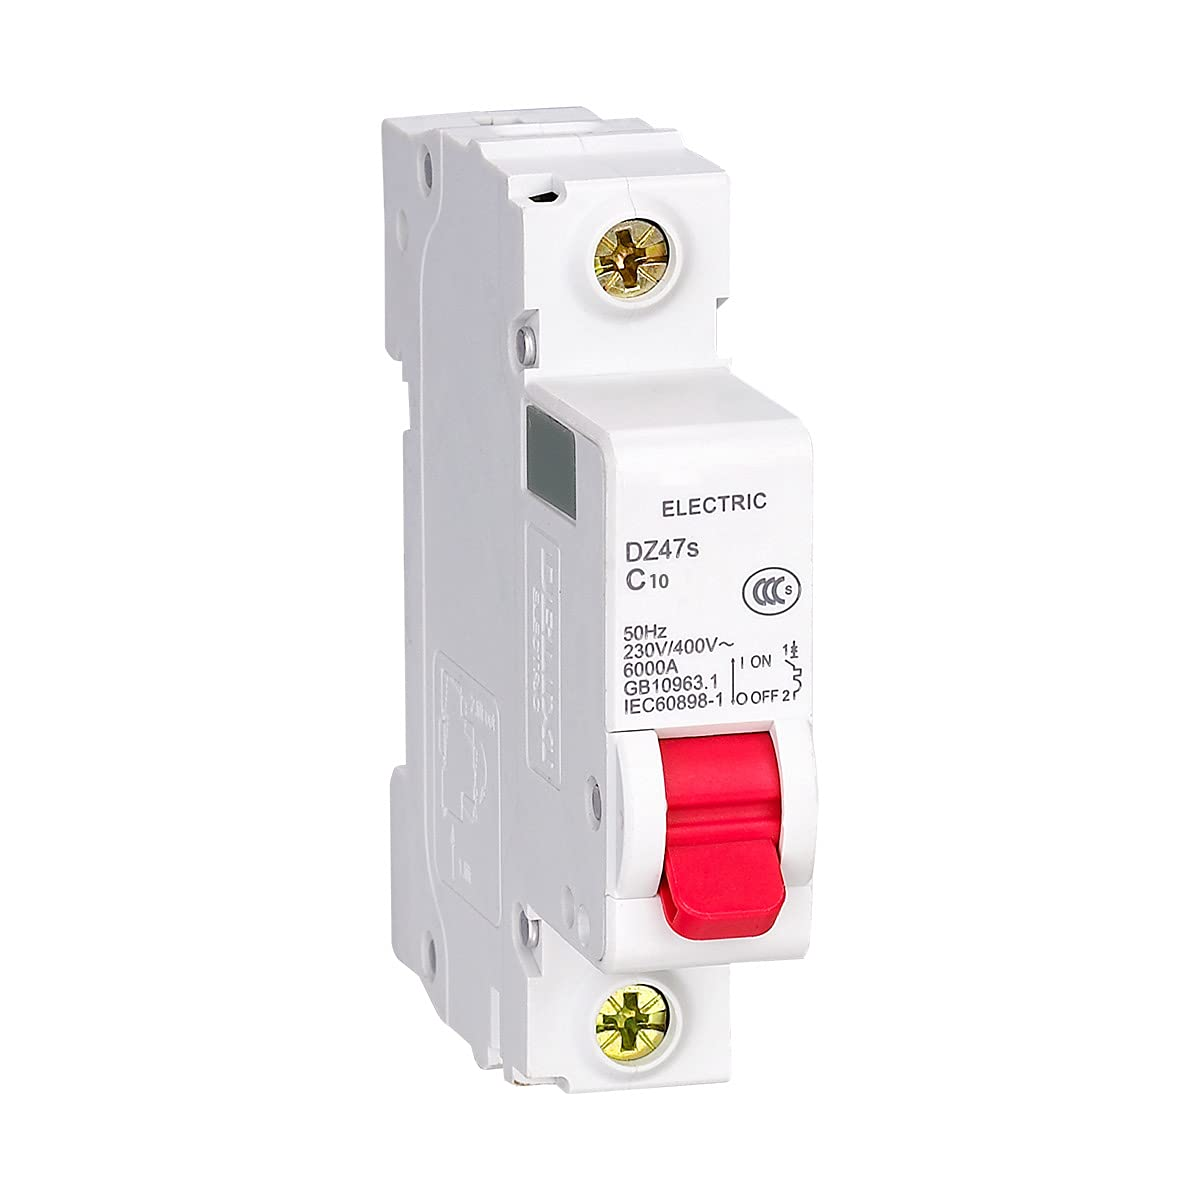 free Miniature Circuit Breaker Low-Voltage DZ47 400V Pole 1 230 Free shipping anywhere in the nation DIN